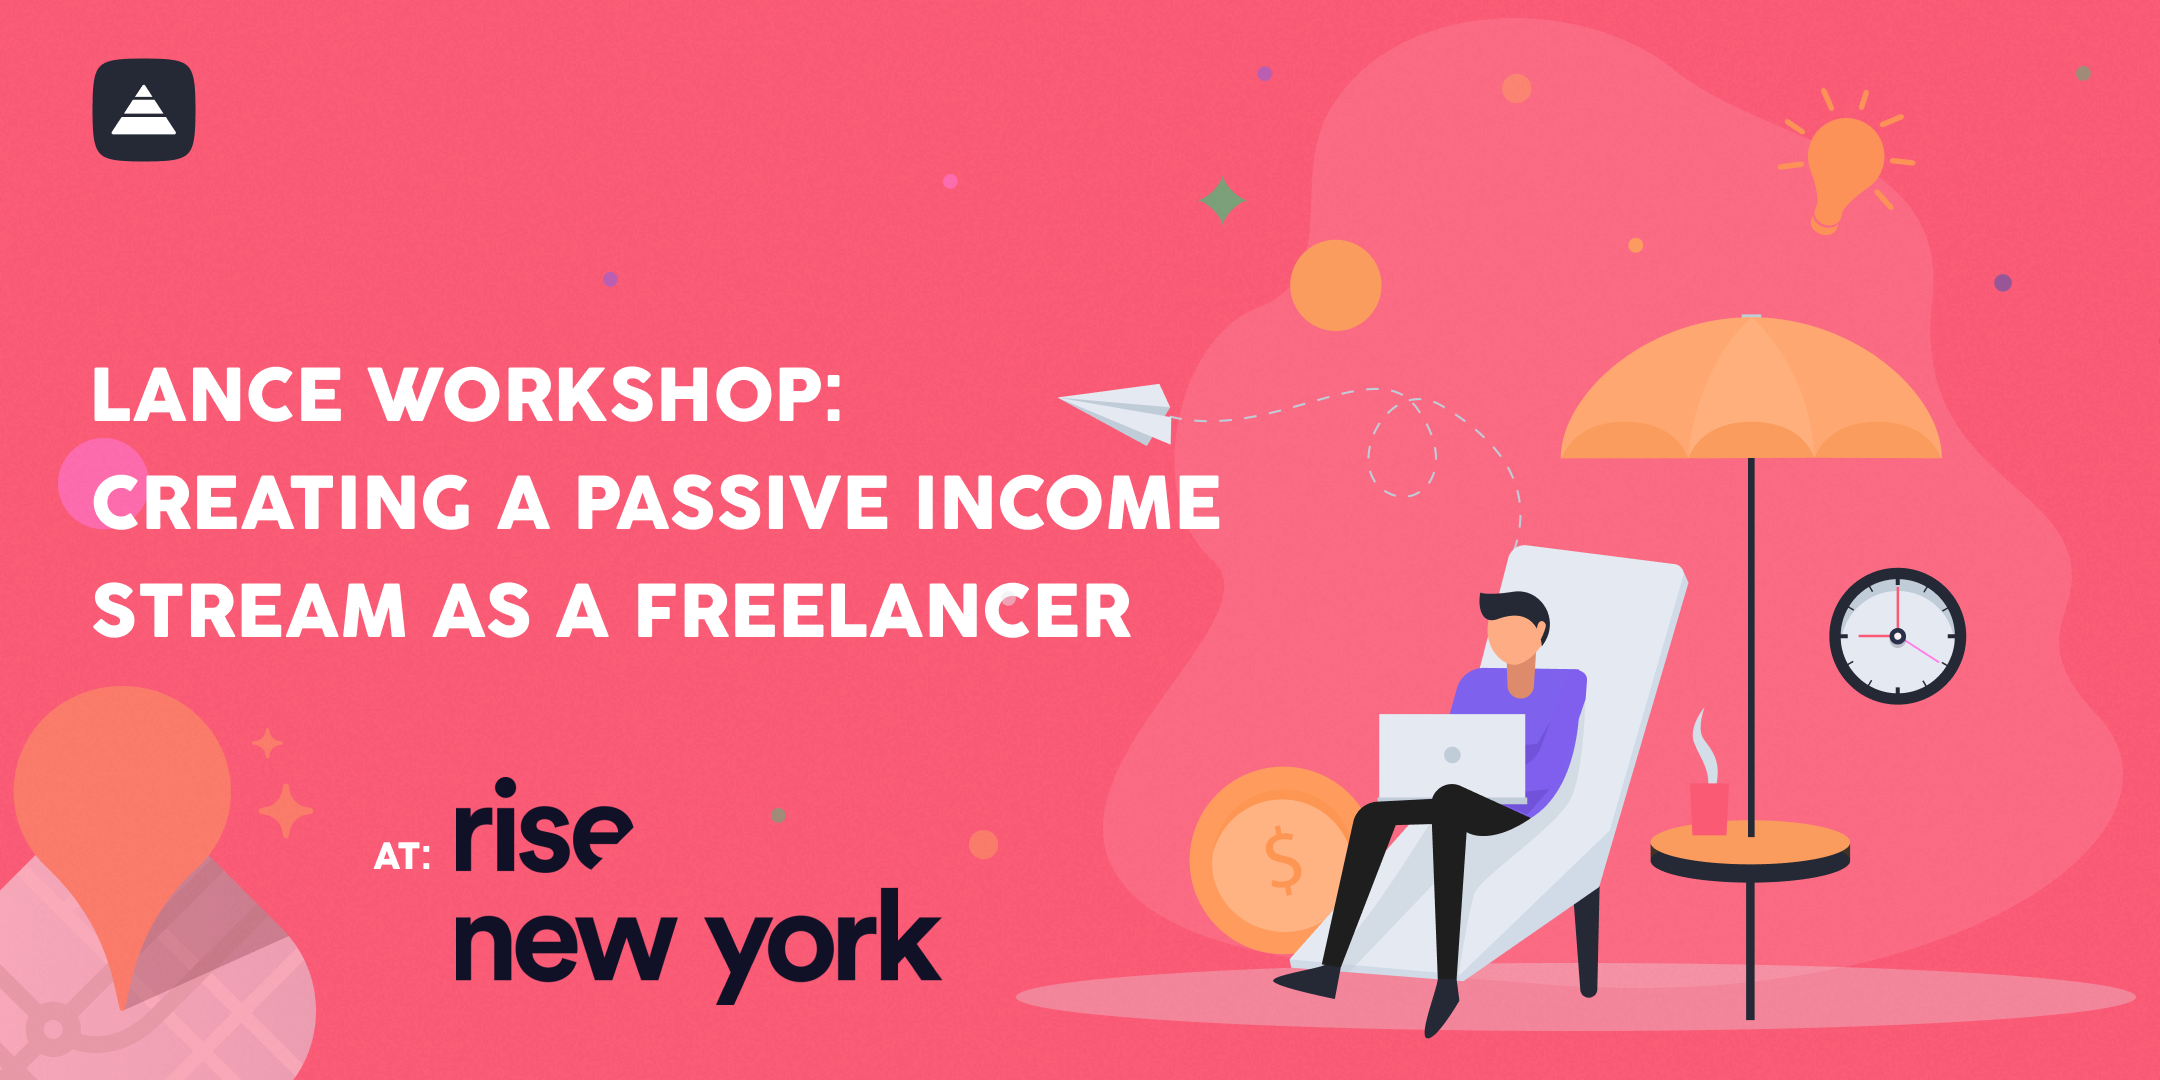 Creating a Passive Income Stream as a Freelancer